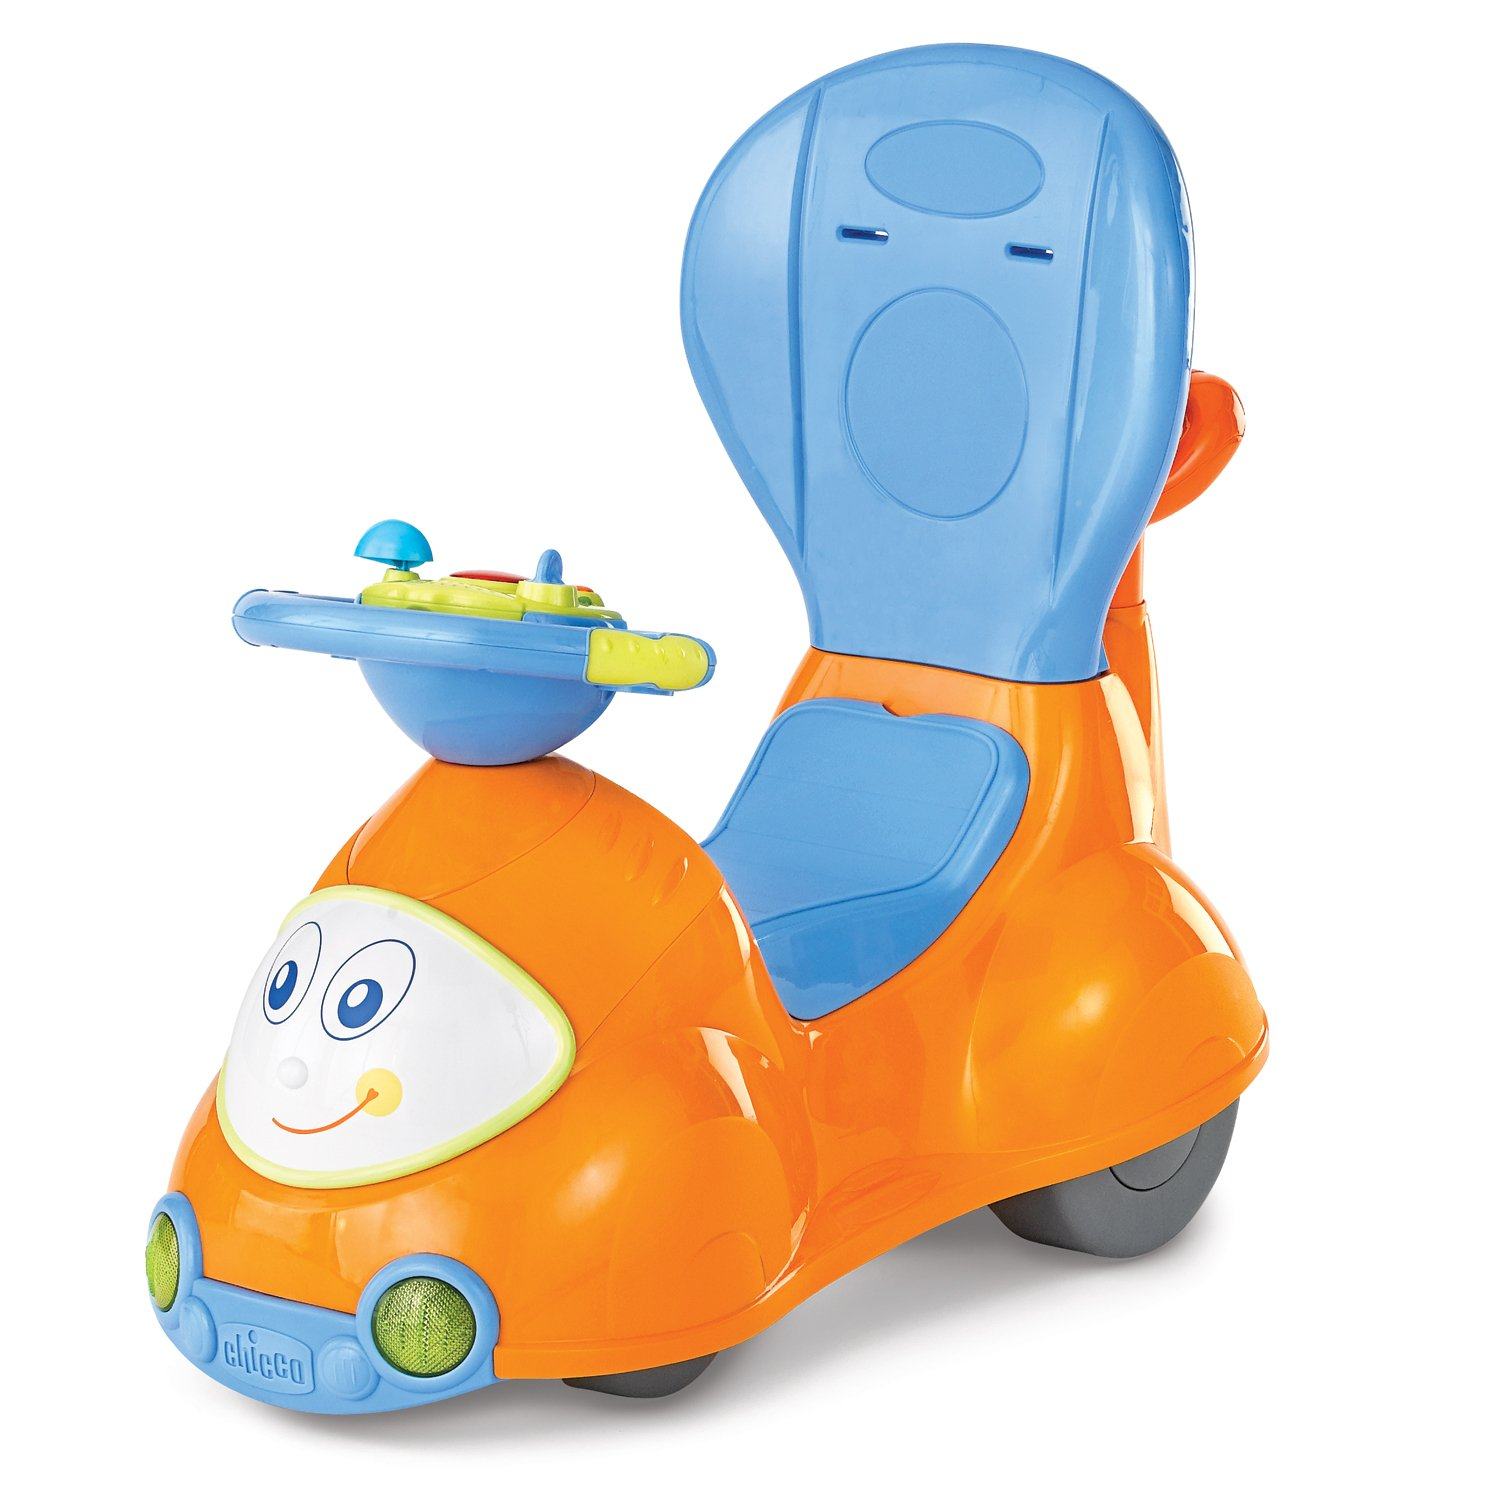 Buy Chicco 4 In 1 Ride Car Orange line at Low Prices in